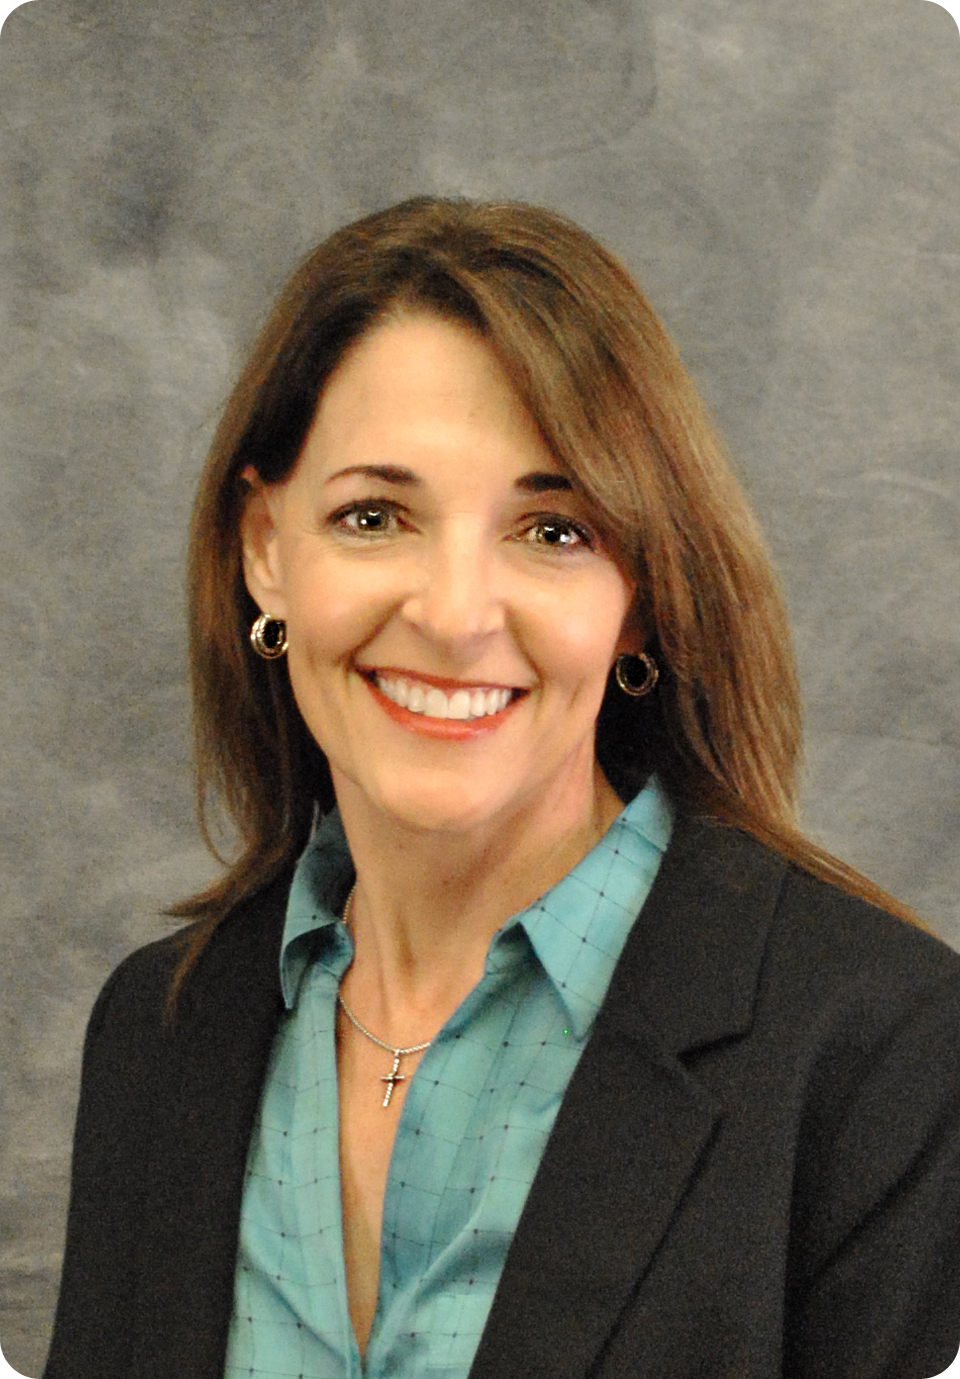 Gretchen Bourgeois, CPA, Tax Services